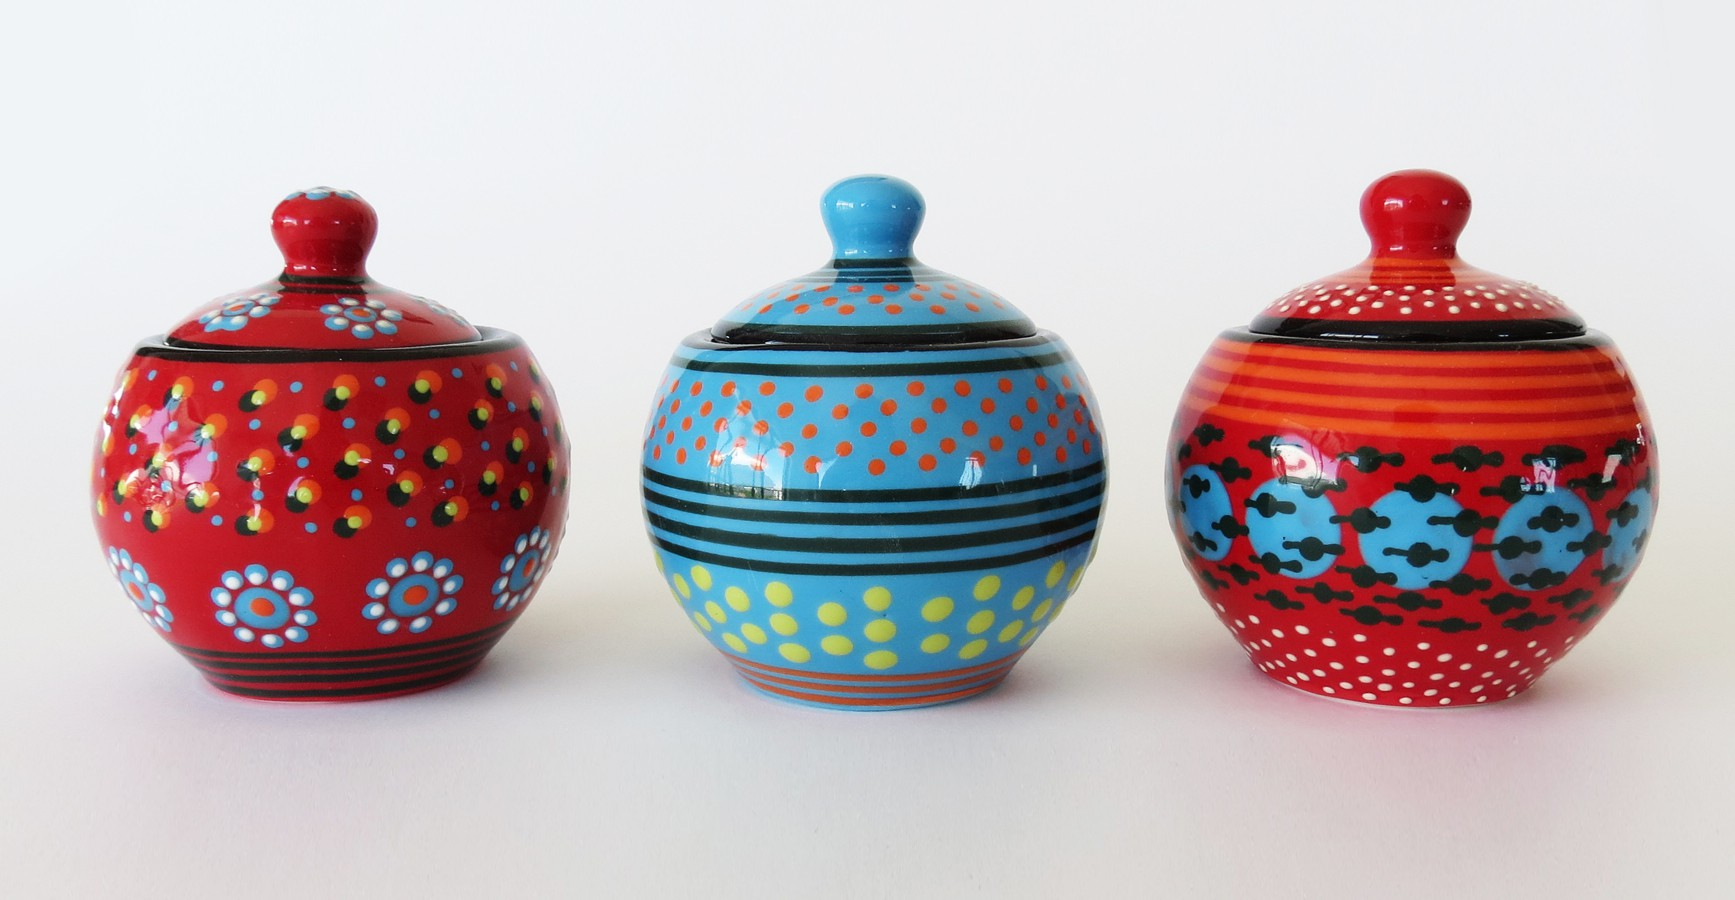 Sugar bowls with lids - Sugar Bowl With Lid